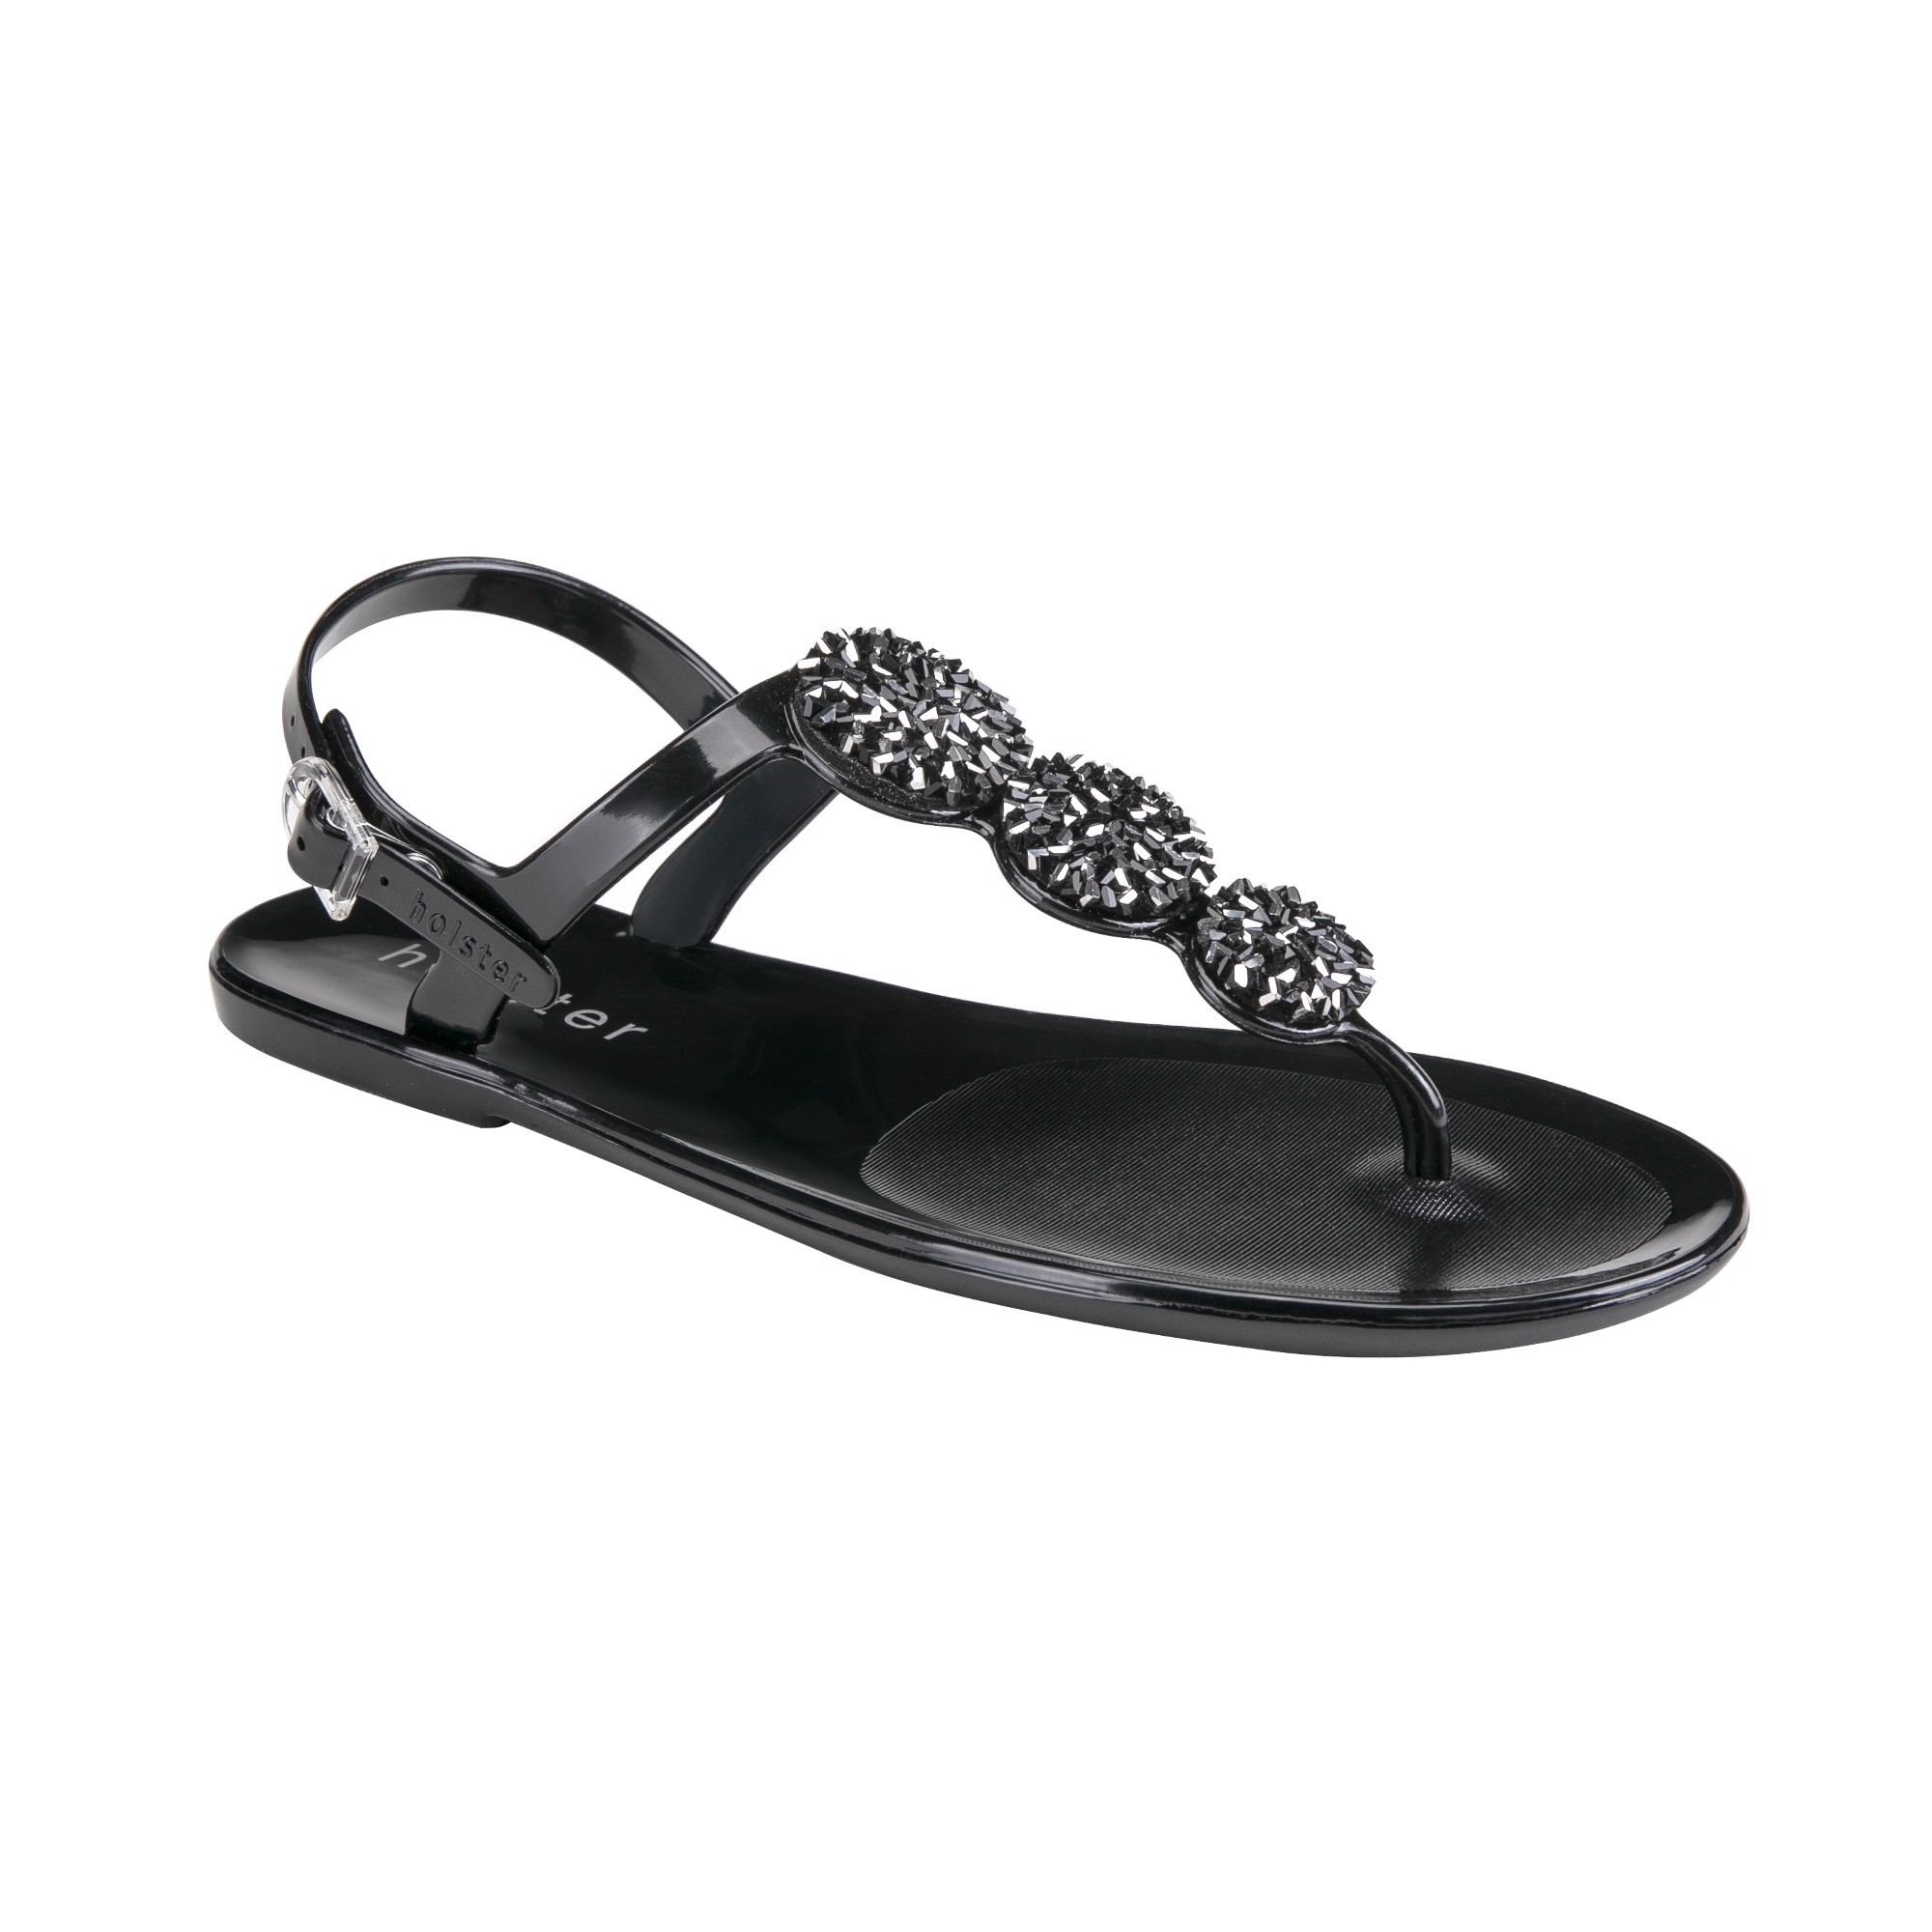 Giày Sandals Nữ Holster Ad Sapphire